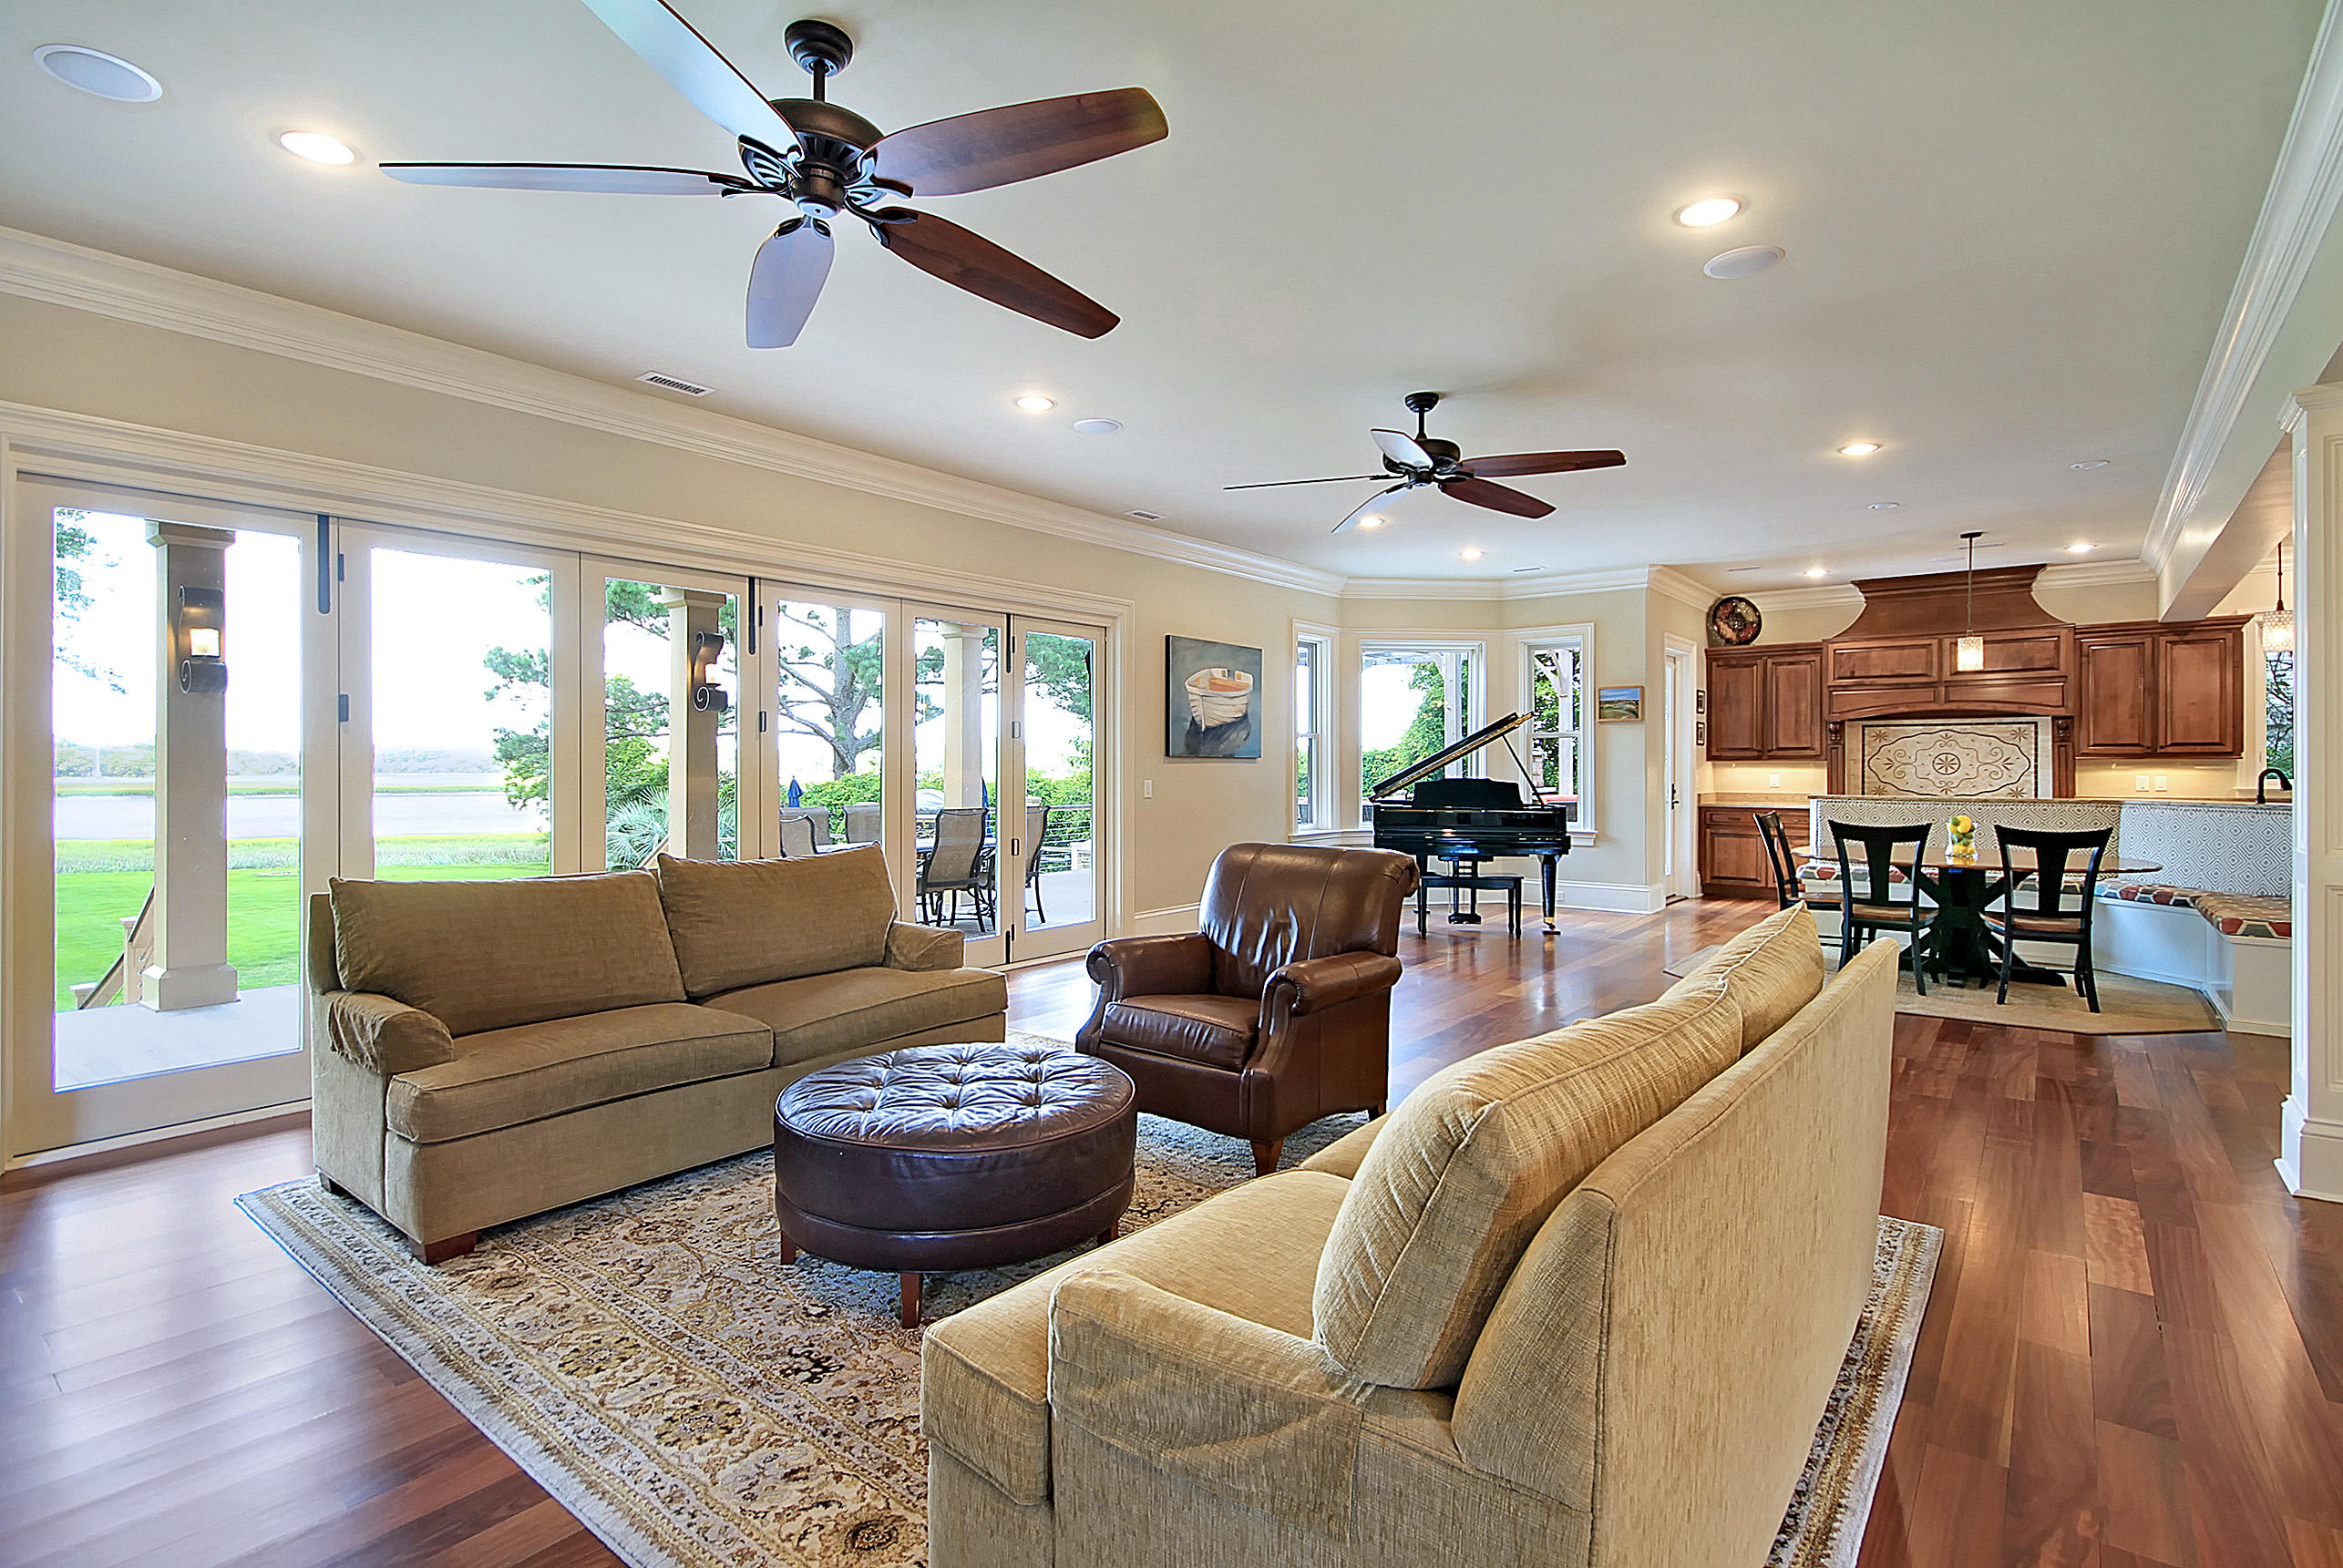 Riverland Terrace Homes For Sale - 2044 Wappoo Hall, Charleston, SC - 102